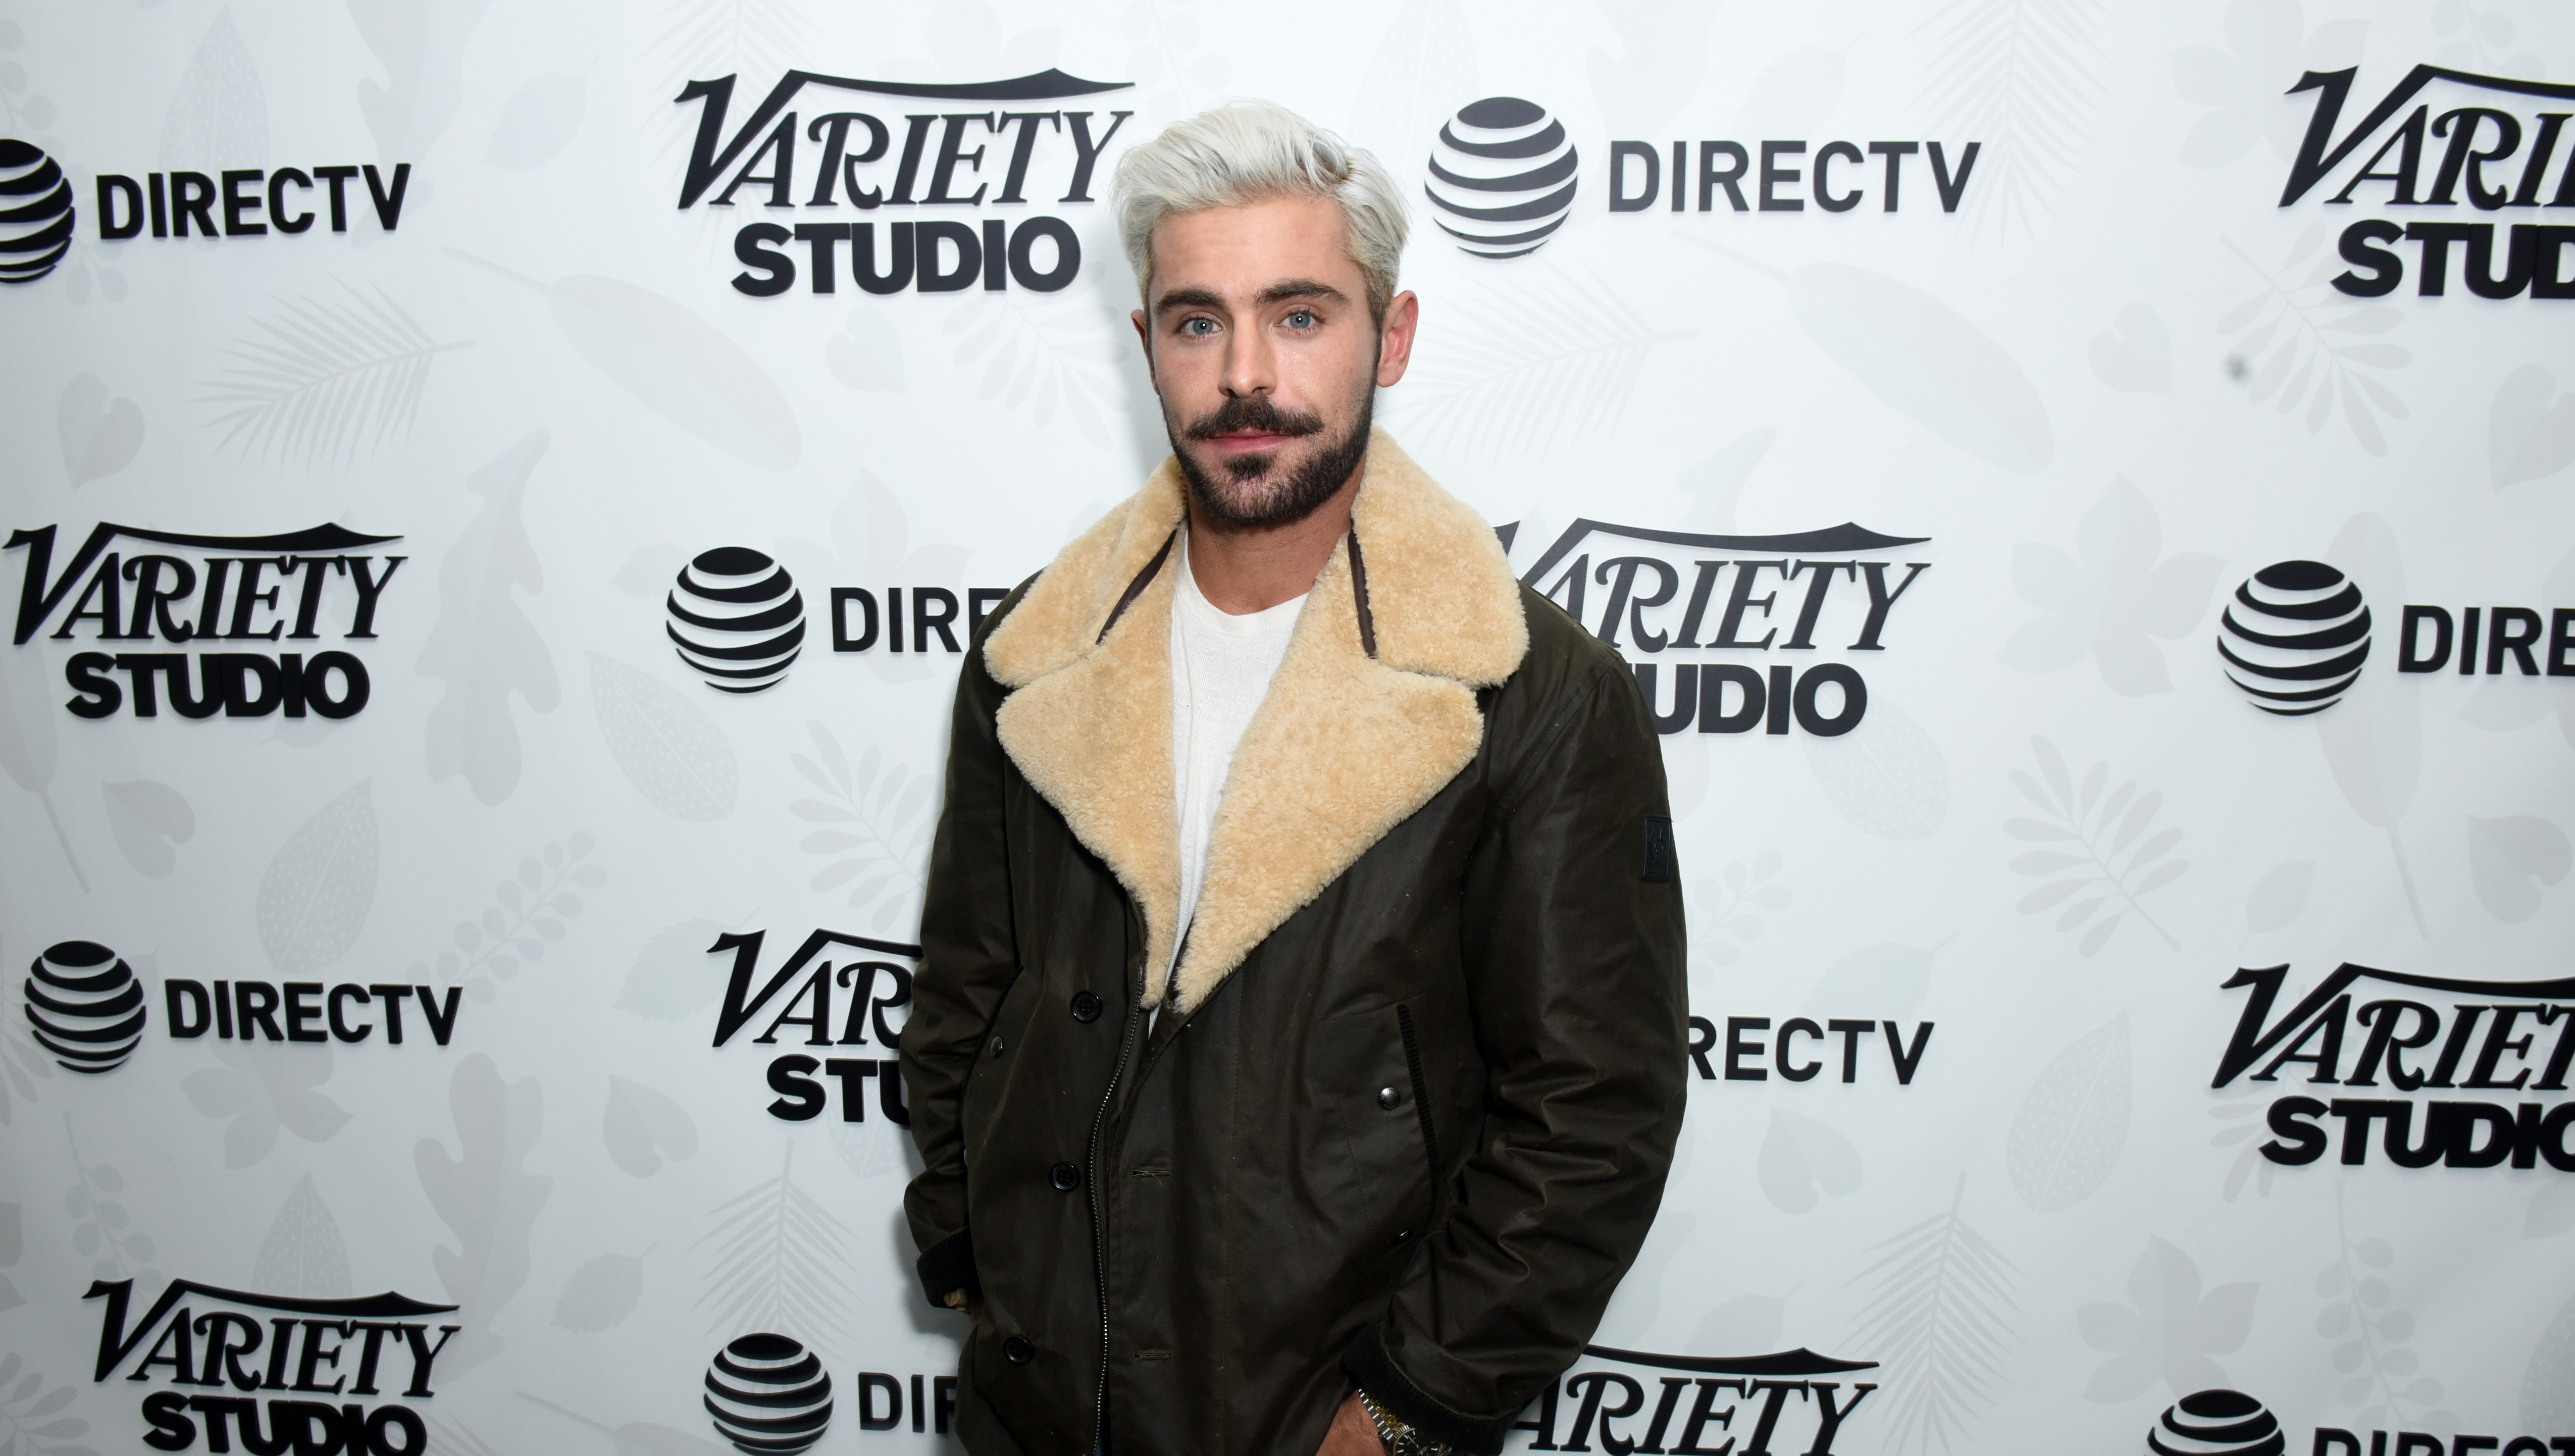 "DIRECTV Lodge Presented By AT&T Hosted Voltage Pictures' ""Extremely Wicked, Shockingly Evil and Vile"" Party At Sundance Film Festival 2019"